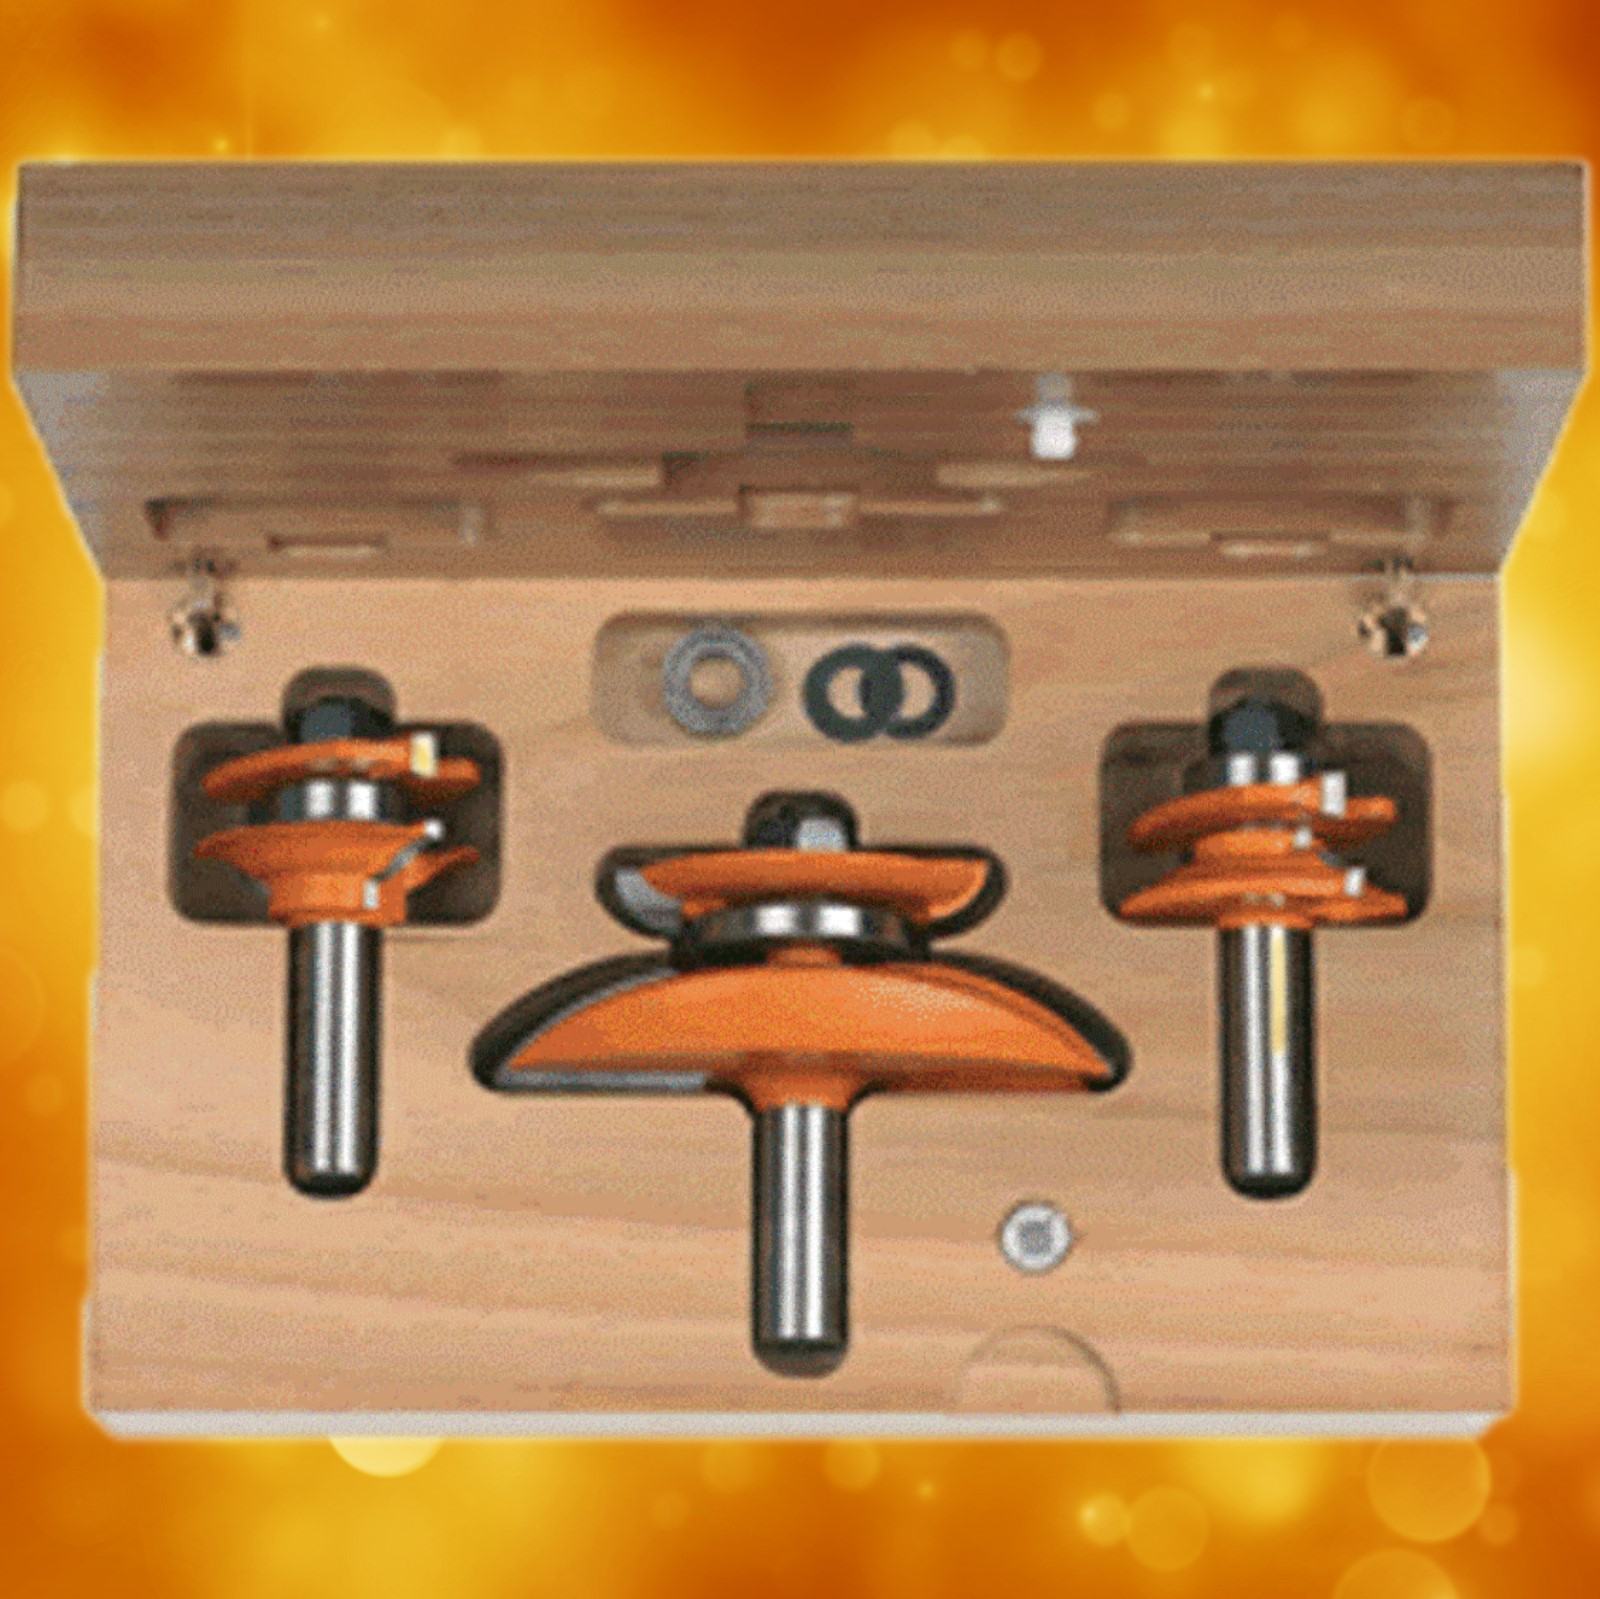 "CMT Ogee Raised Panel Router Bit Set, 1/2"" shank 800.521.11"